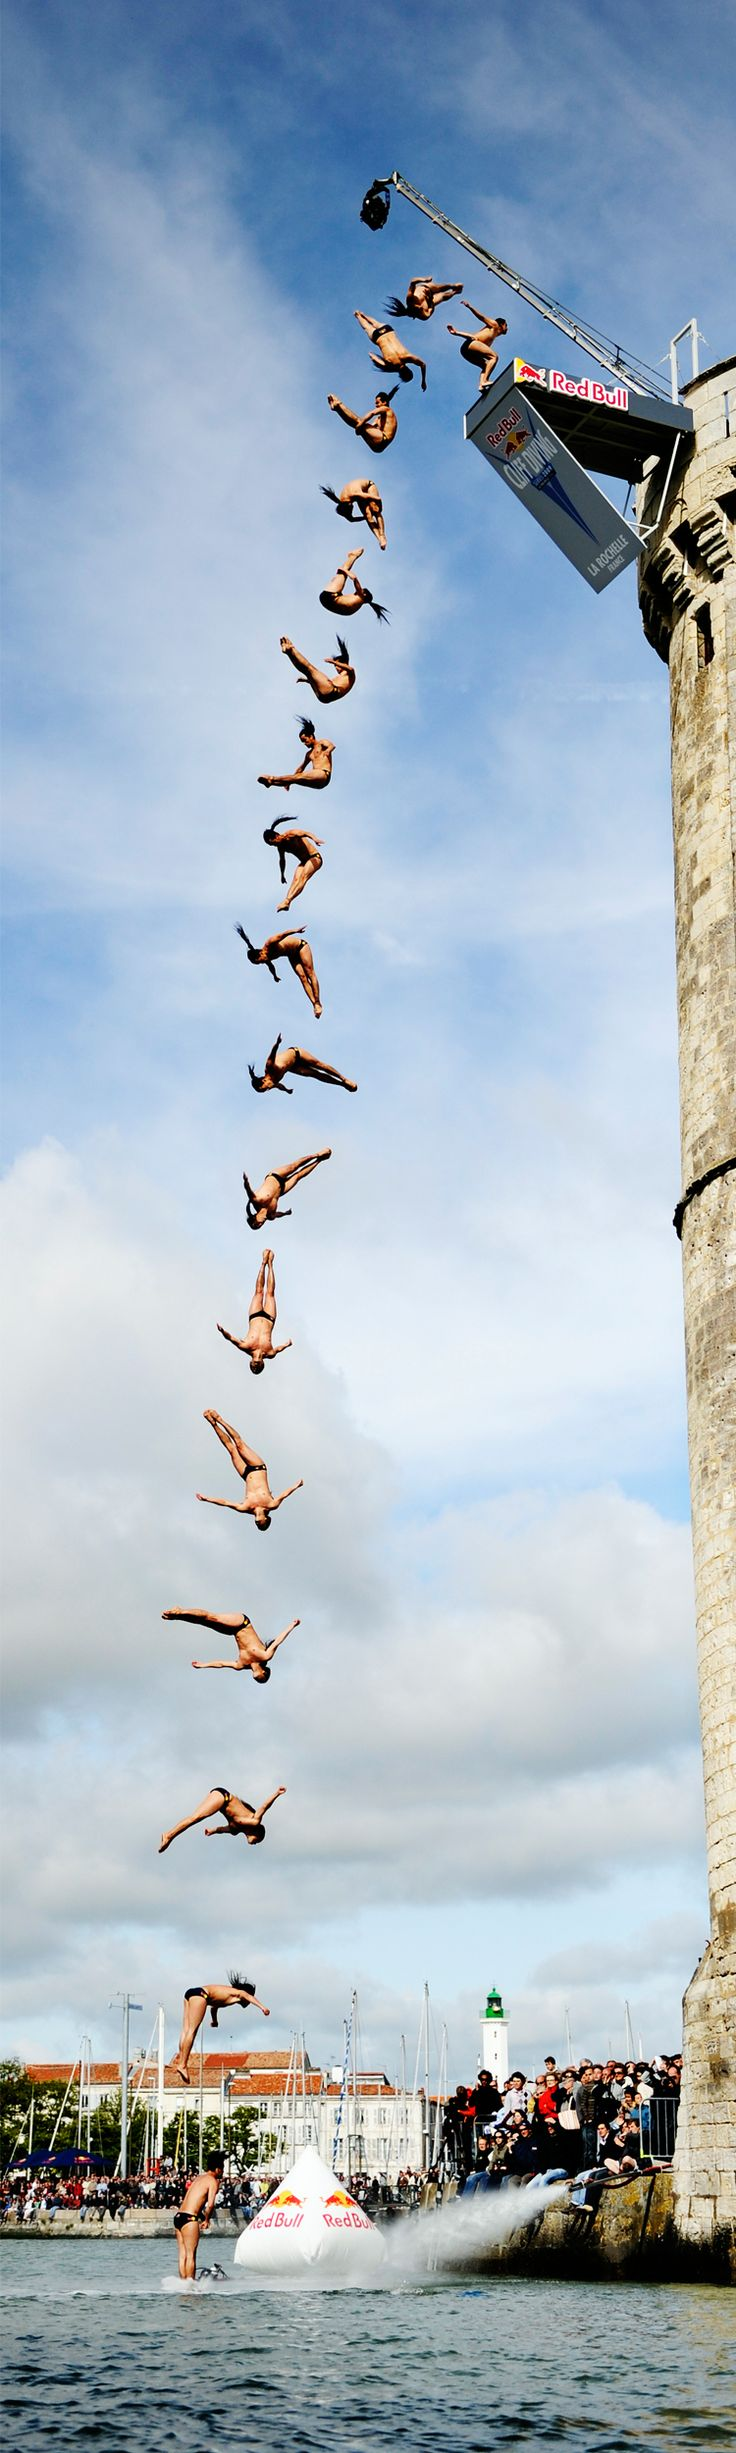 Red Bull Cliff Diving - La Rochelle | Red Bull | Three seconds to do what? #redbull #cliffdiving